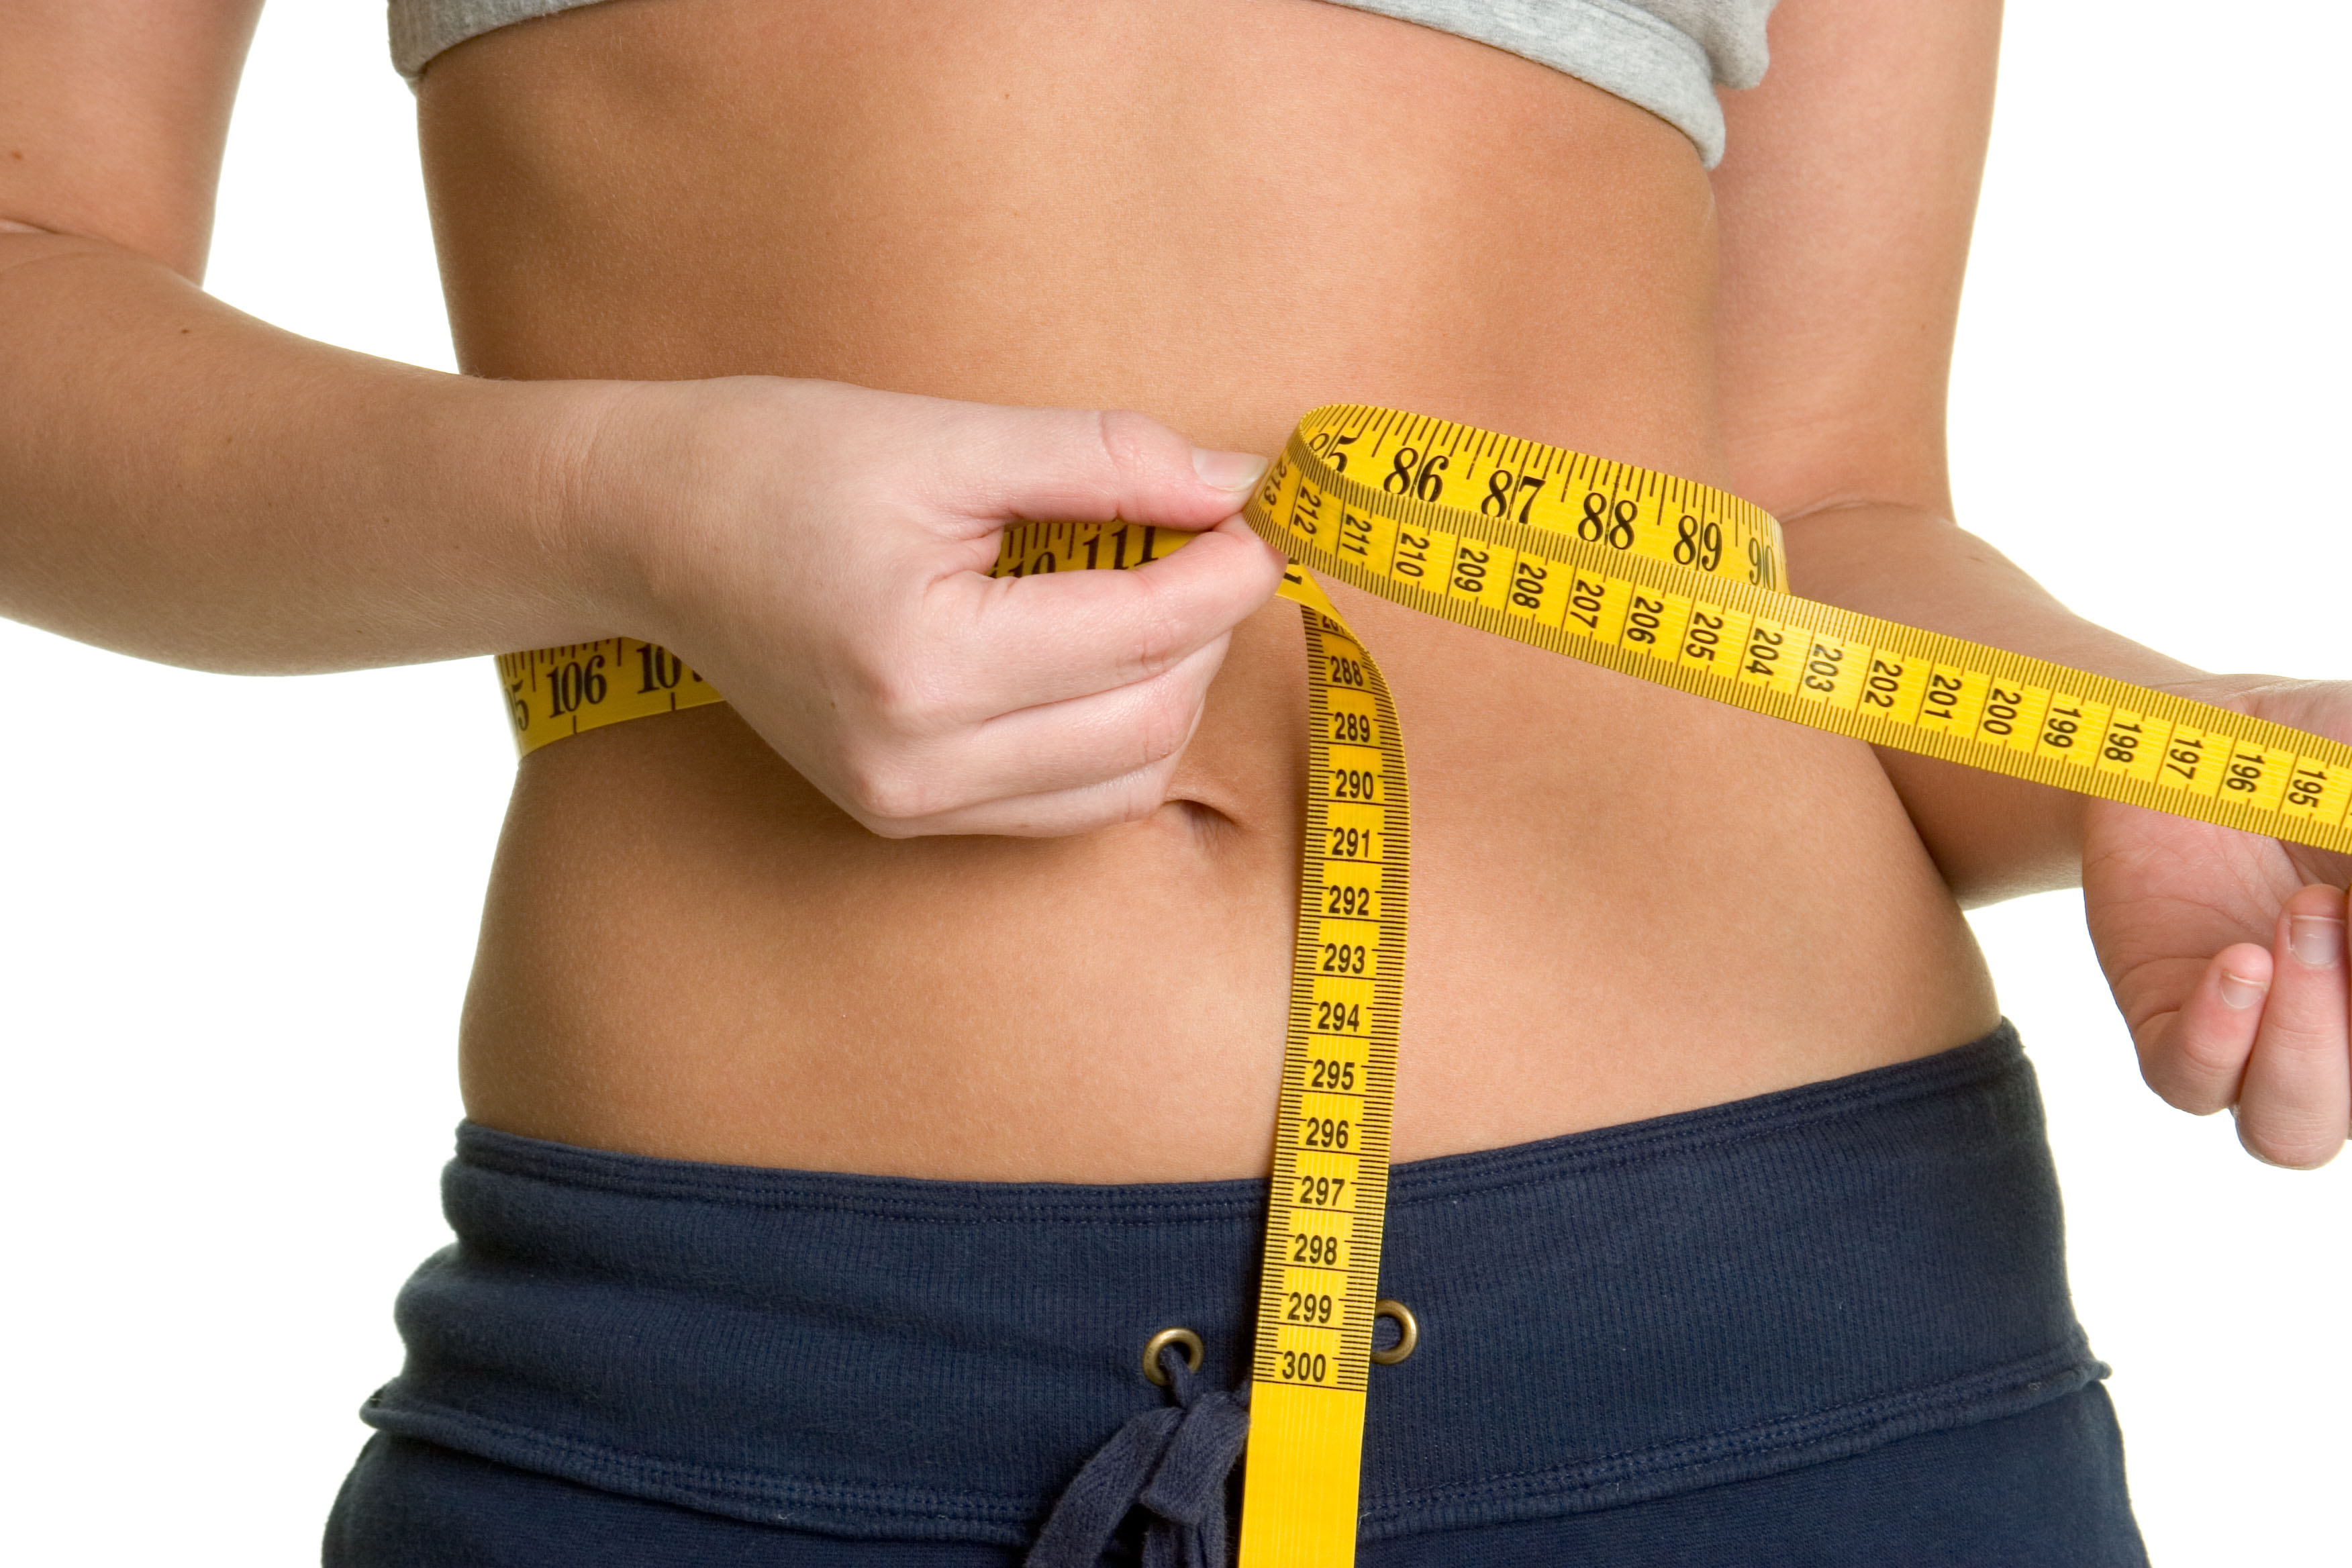 Slimming Services in Sector 14, Faridabad